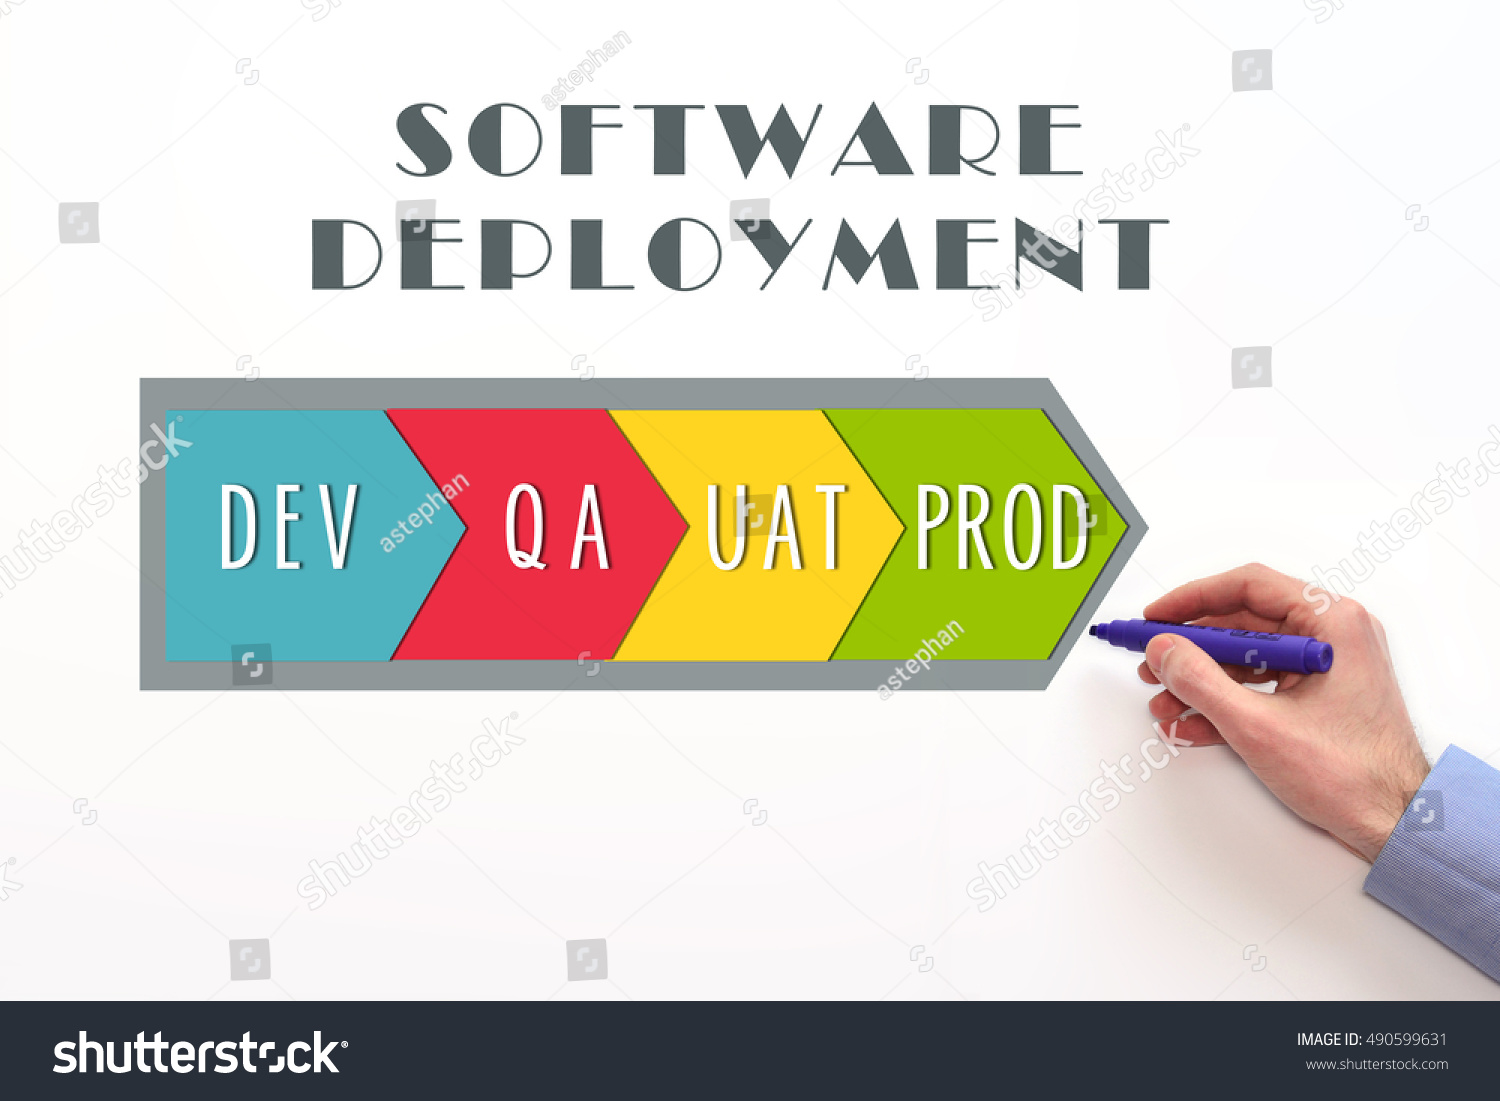 hight resolution of software deployment process diagram dev qa uat and prod stages on white background